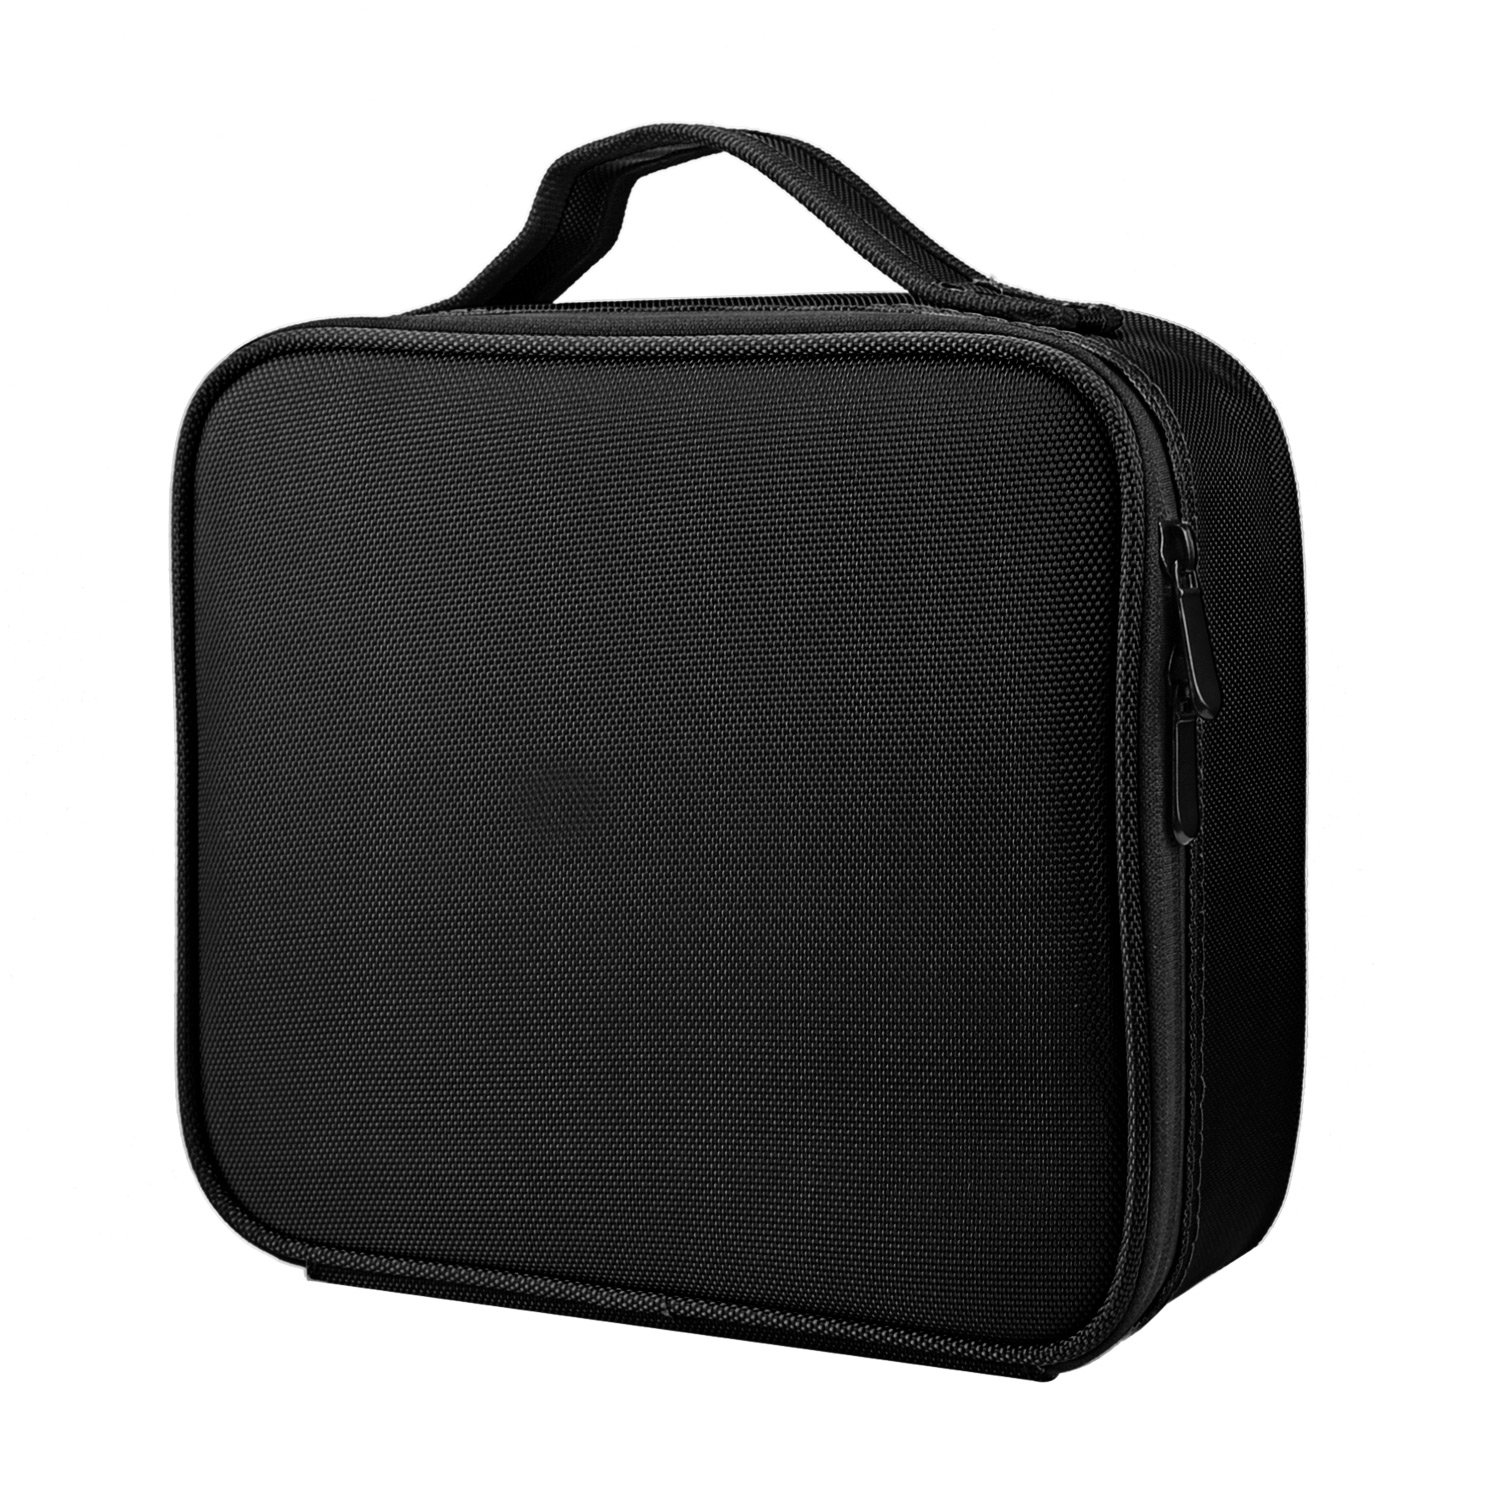 Goldwheat Travel Makeup Cosmetic Case Bag Professional Small Make-up Train Case Brushes Organizer Toiletry Bag with Adjustable Dividers Water Resistant,Black